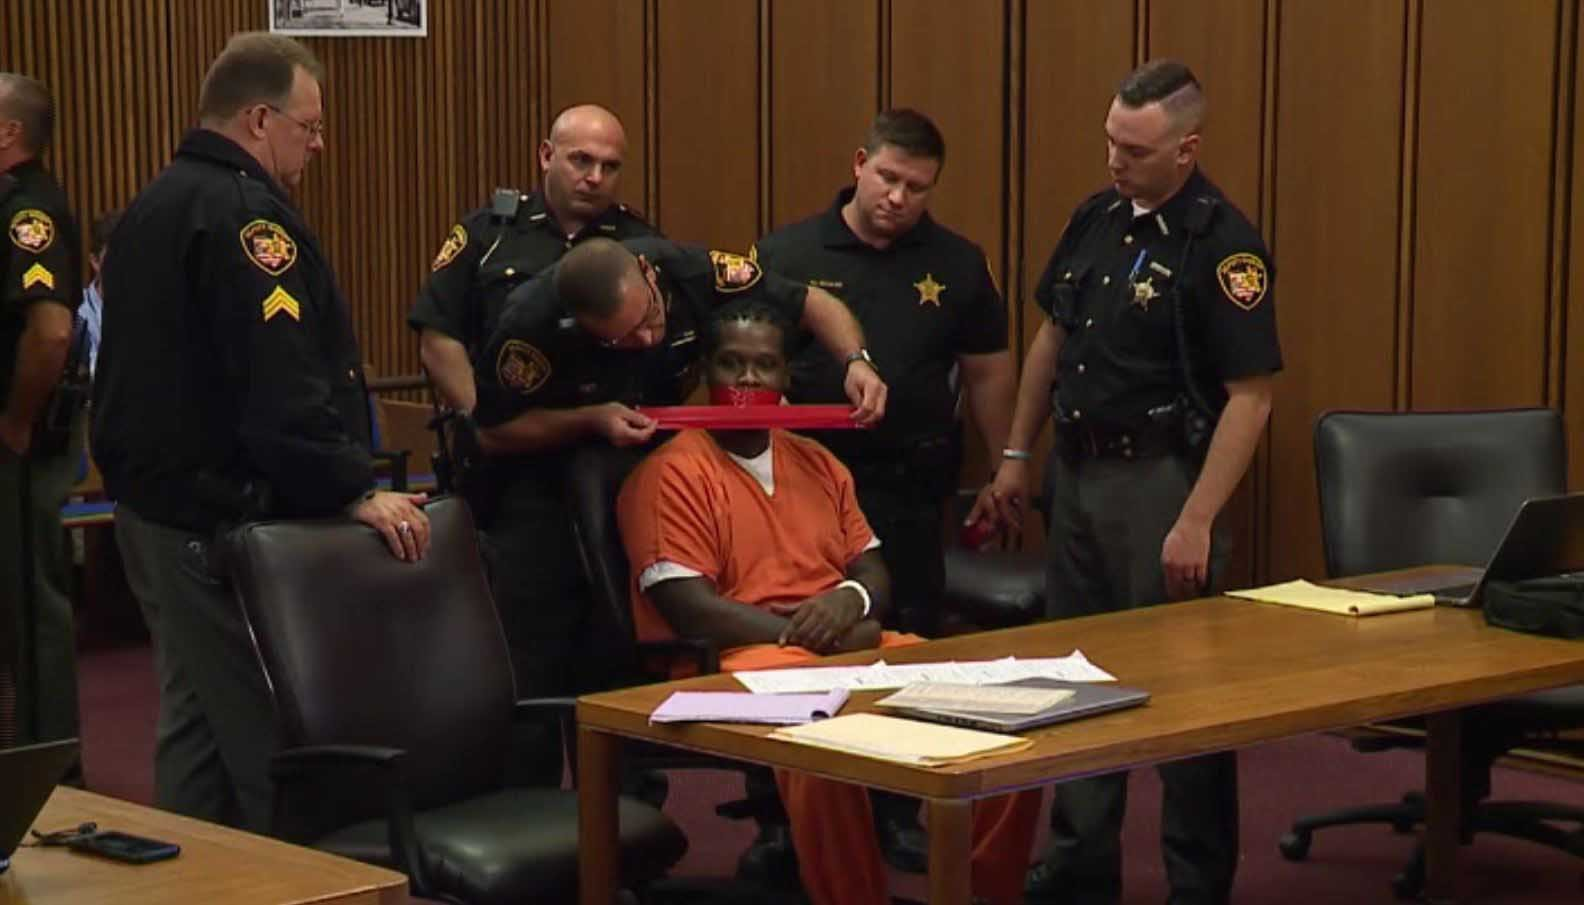 'Shut Your Mouth': Judge Orders Convicted Robber's Mouth Taped Shut During Sentencing